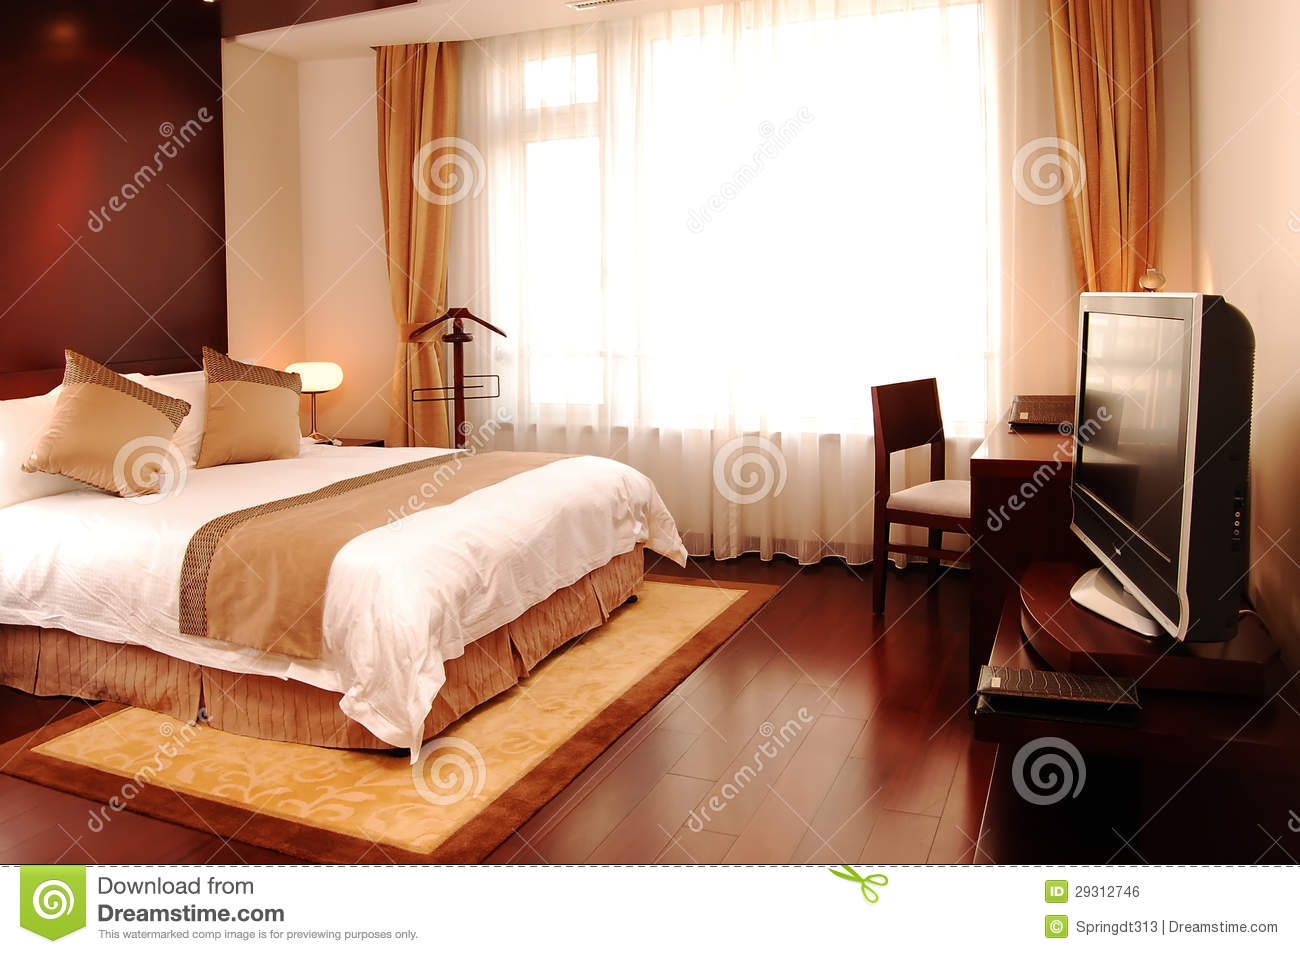 Bedroom royalty free stock image image 29312746 - Image bed room ...